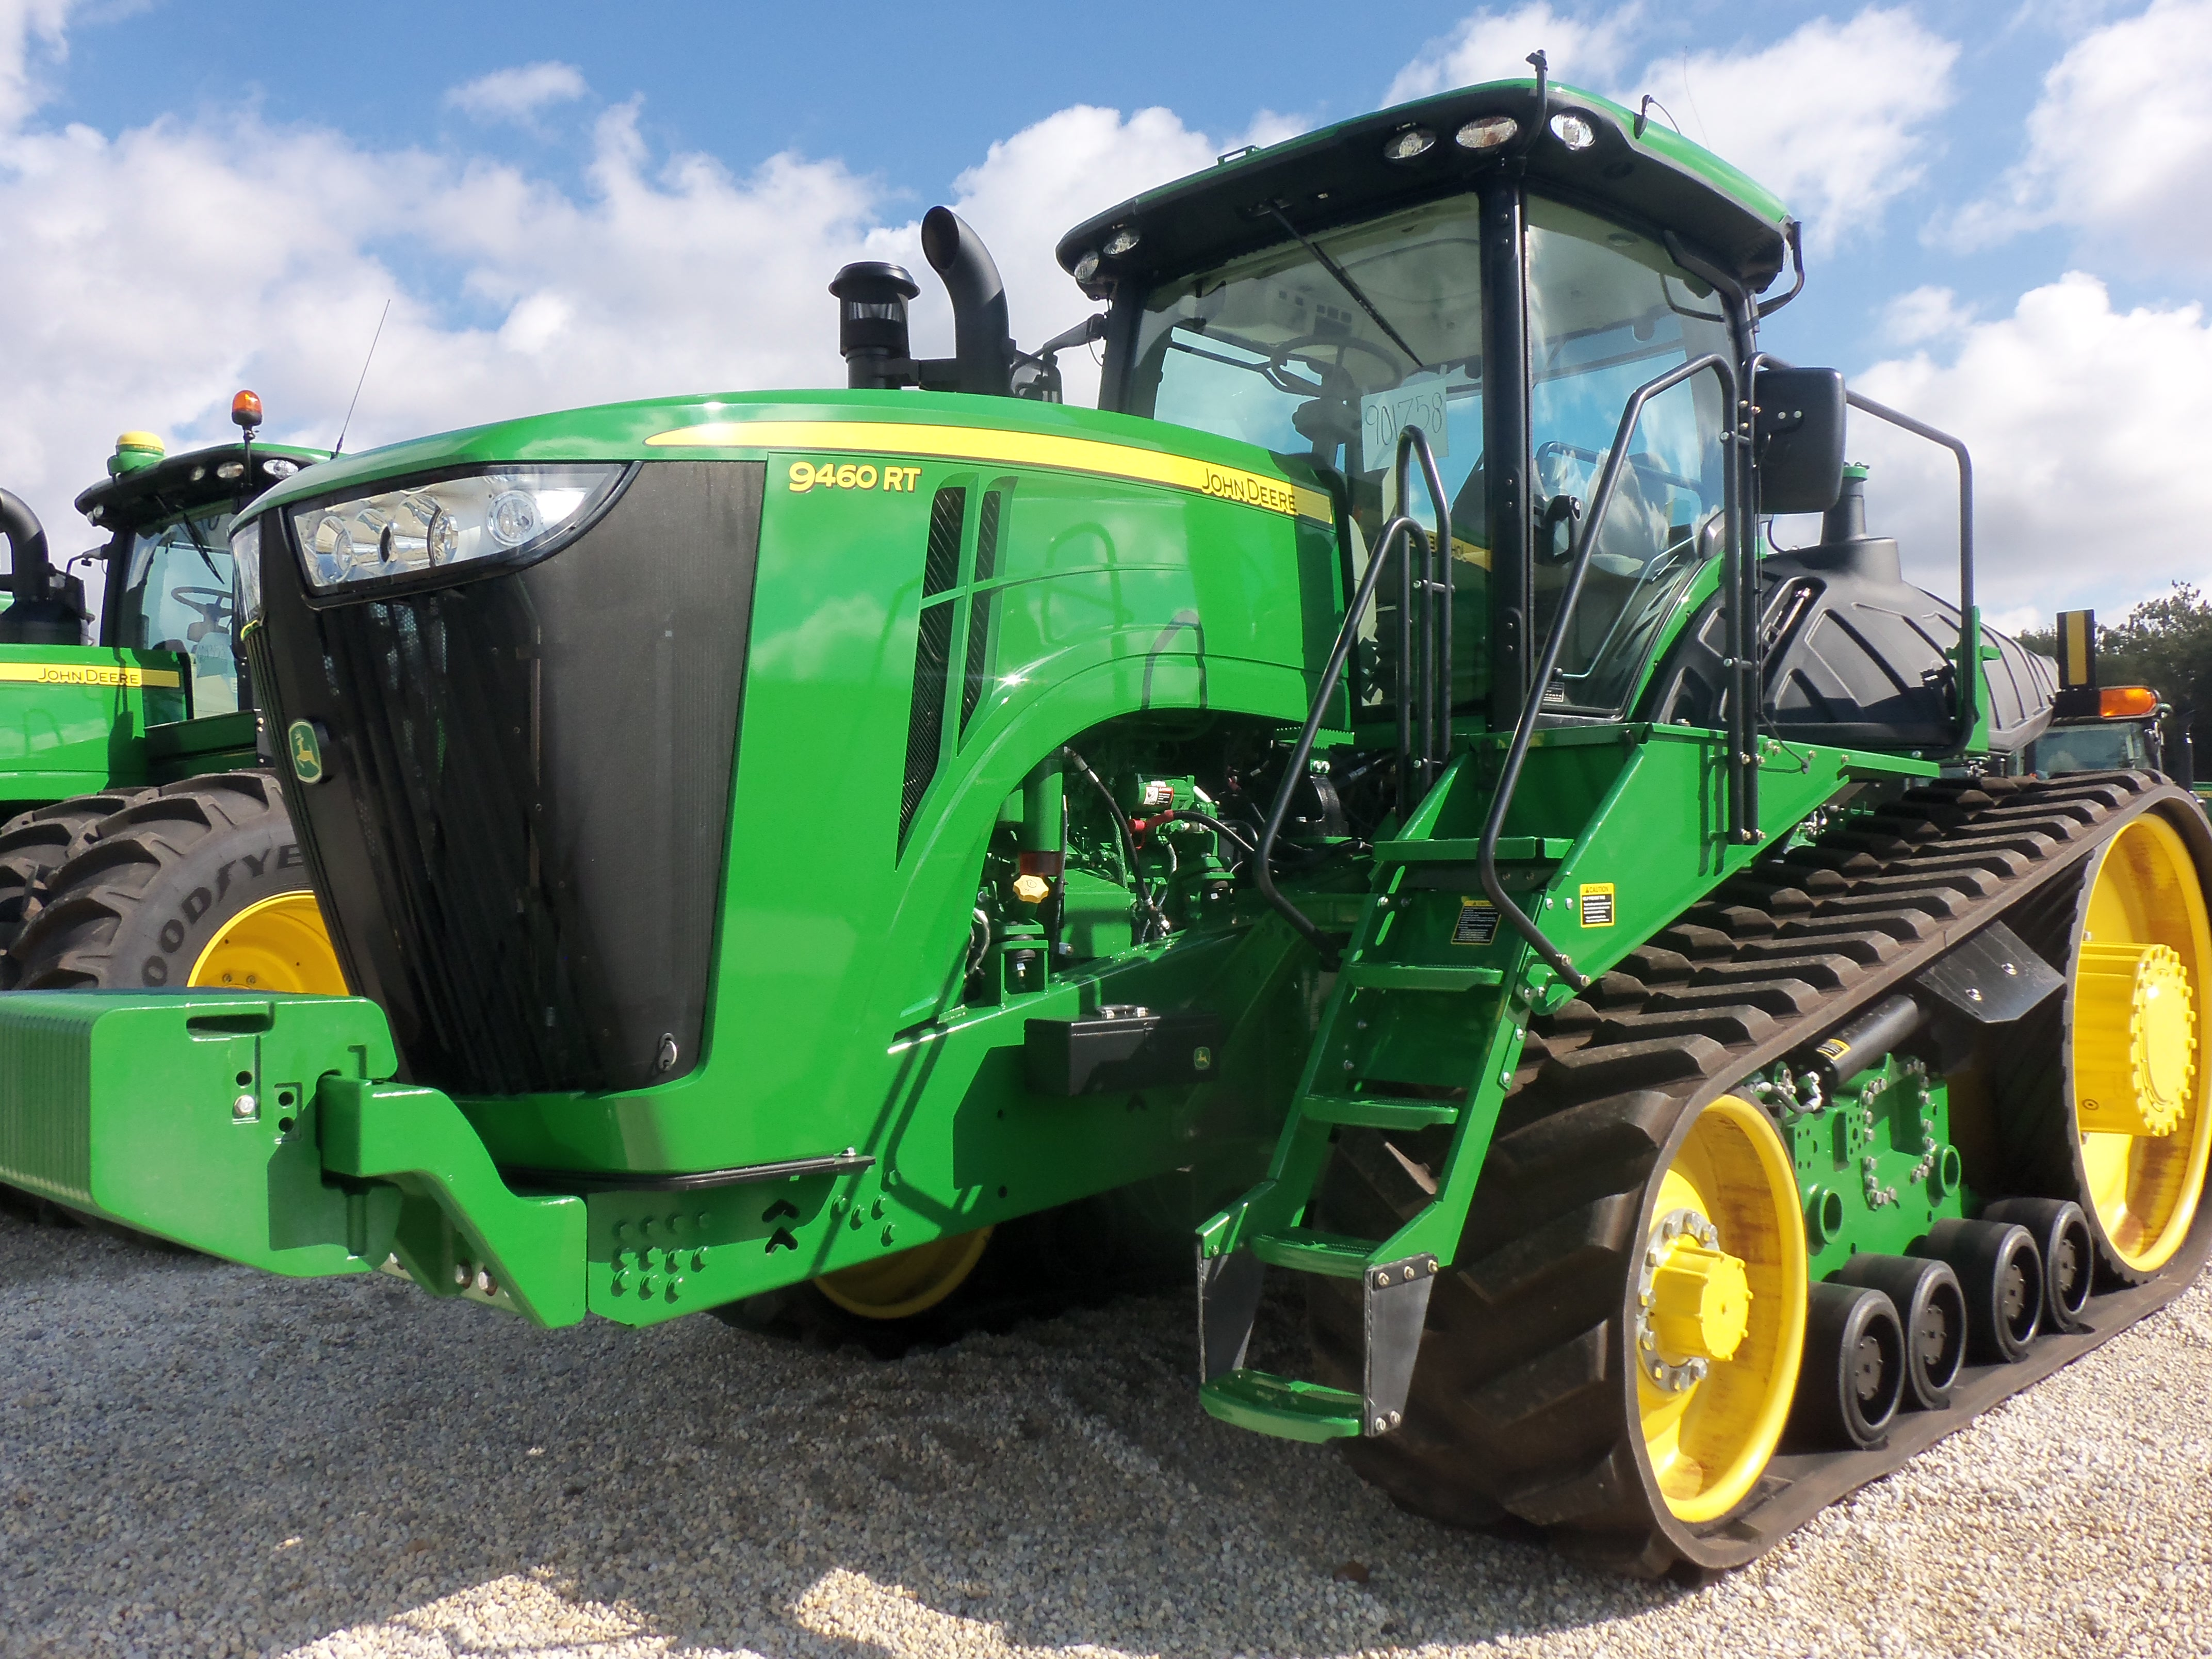 John Deere 9460RT | John Deere equipment | Pinterest